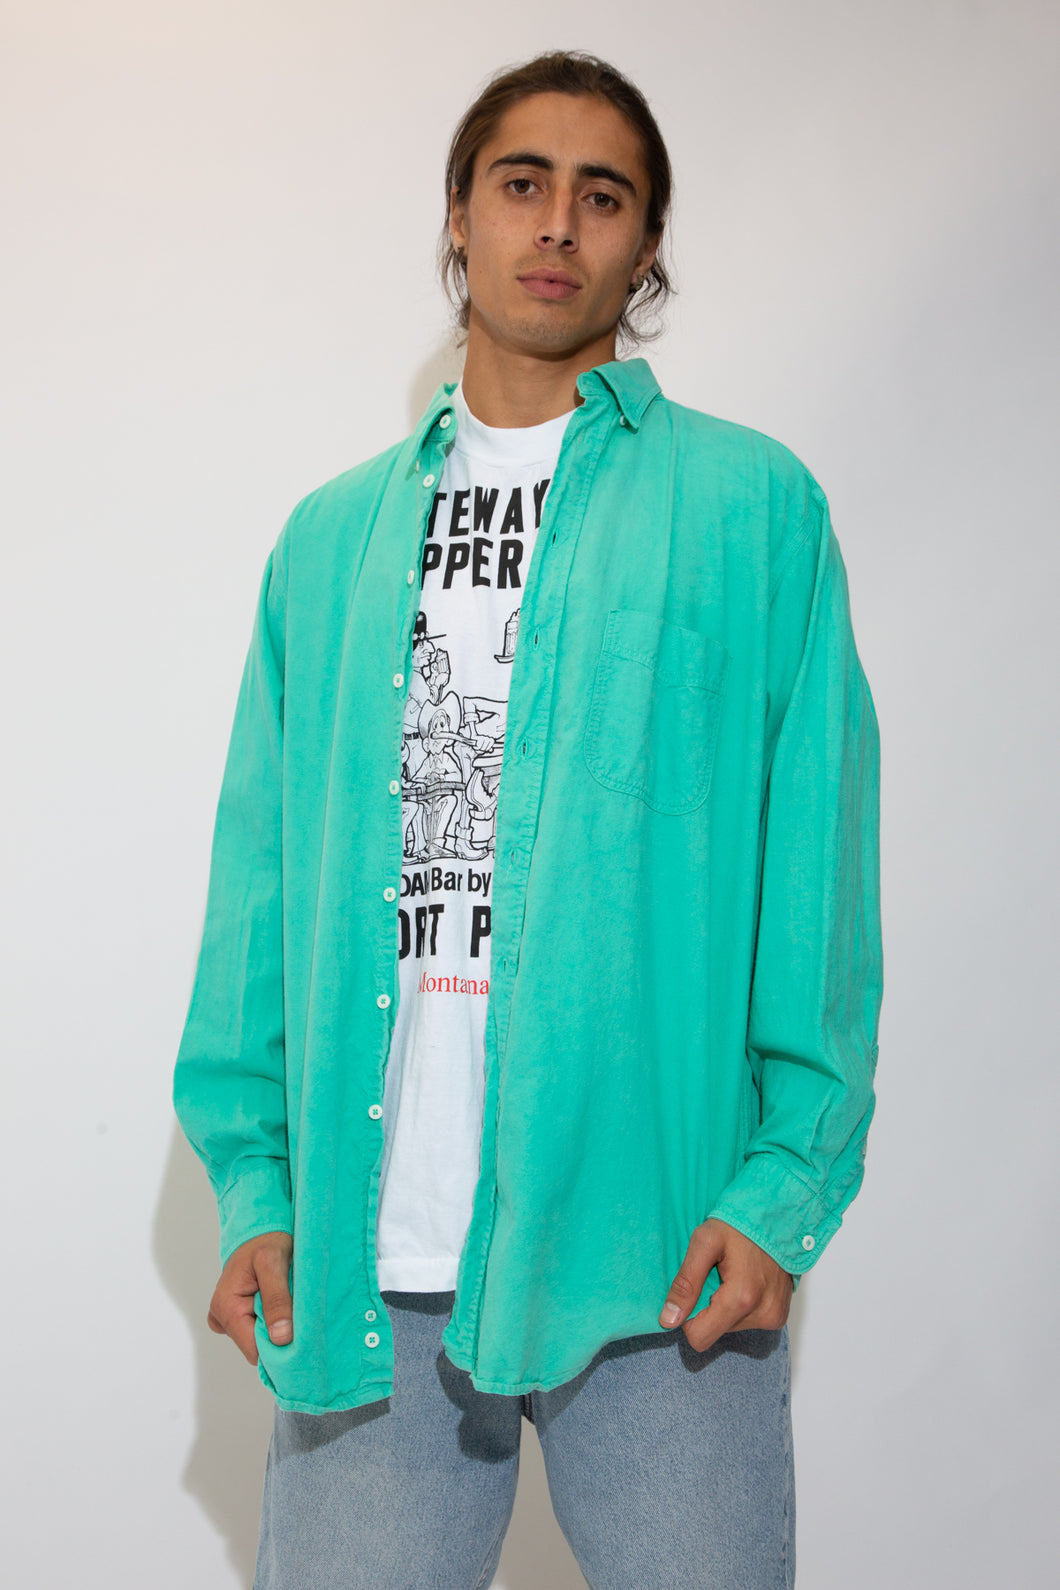 teal button up